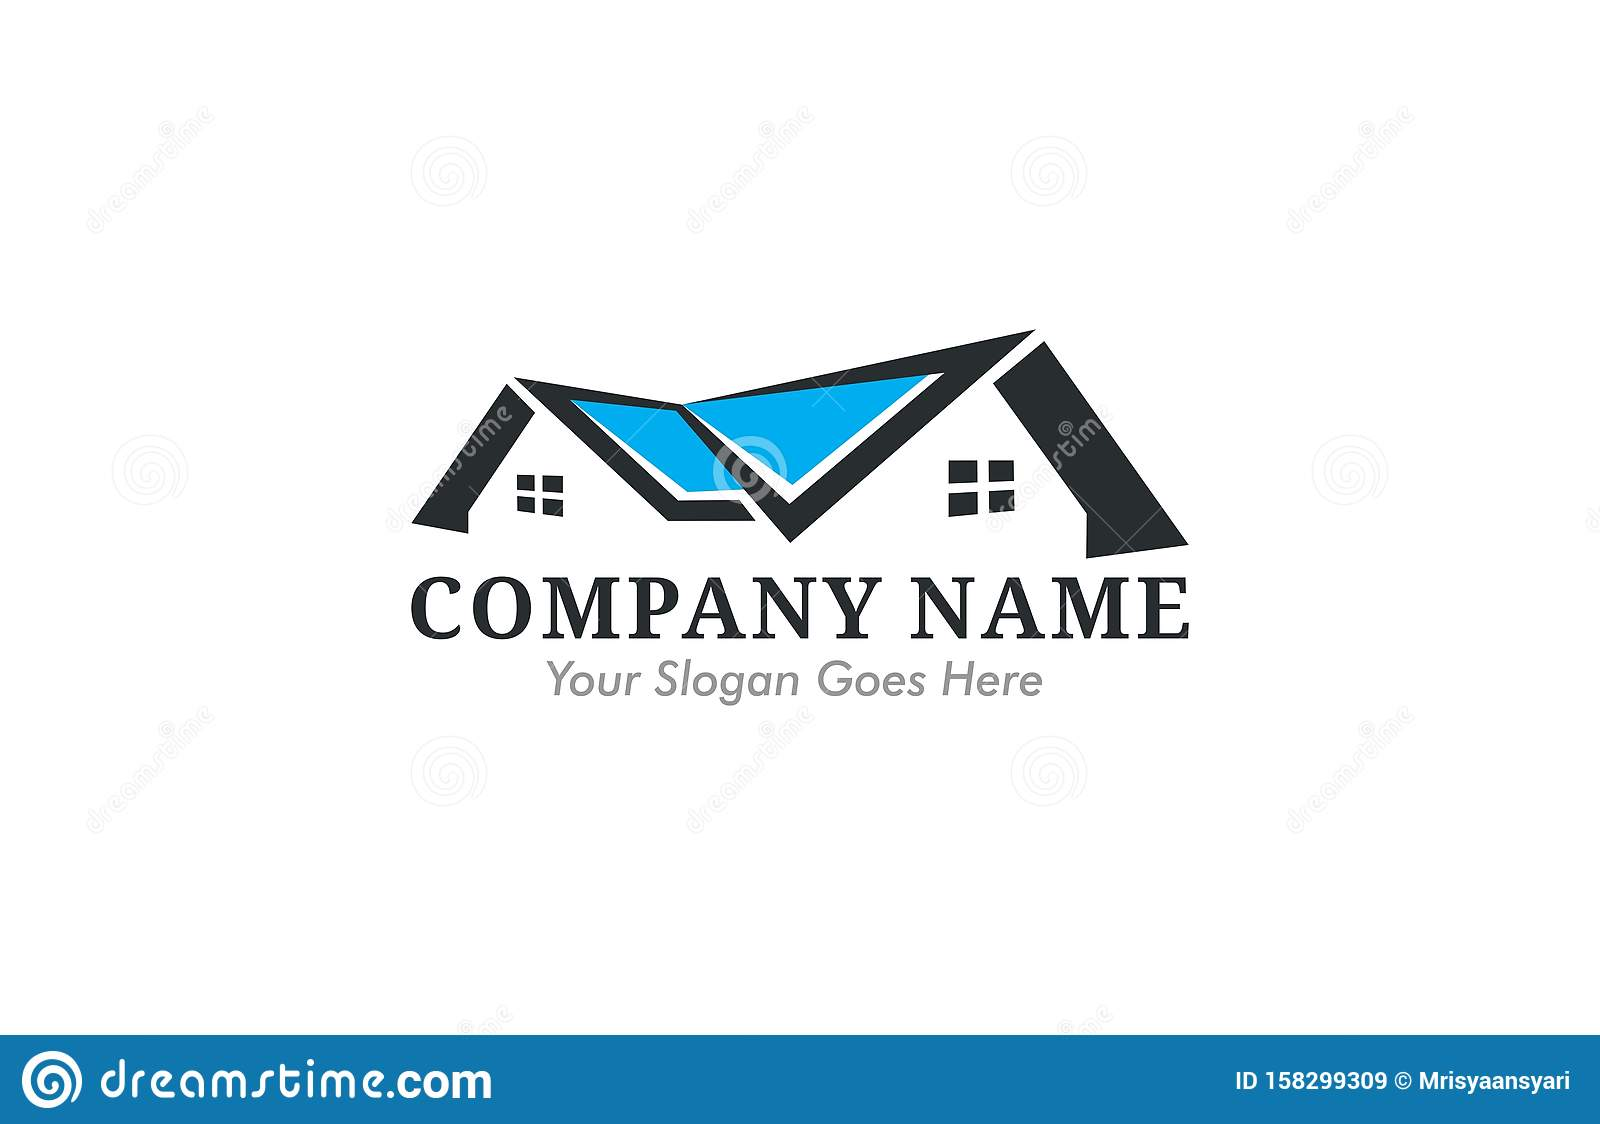 Real Estate Logos Png - Home Real Estate Logo stock vector. Illustration of apartment ...